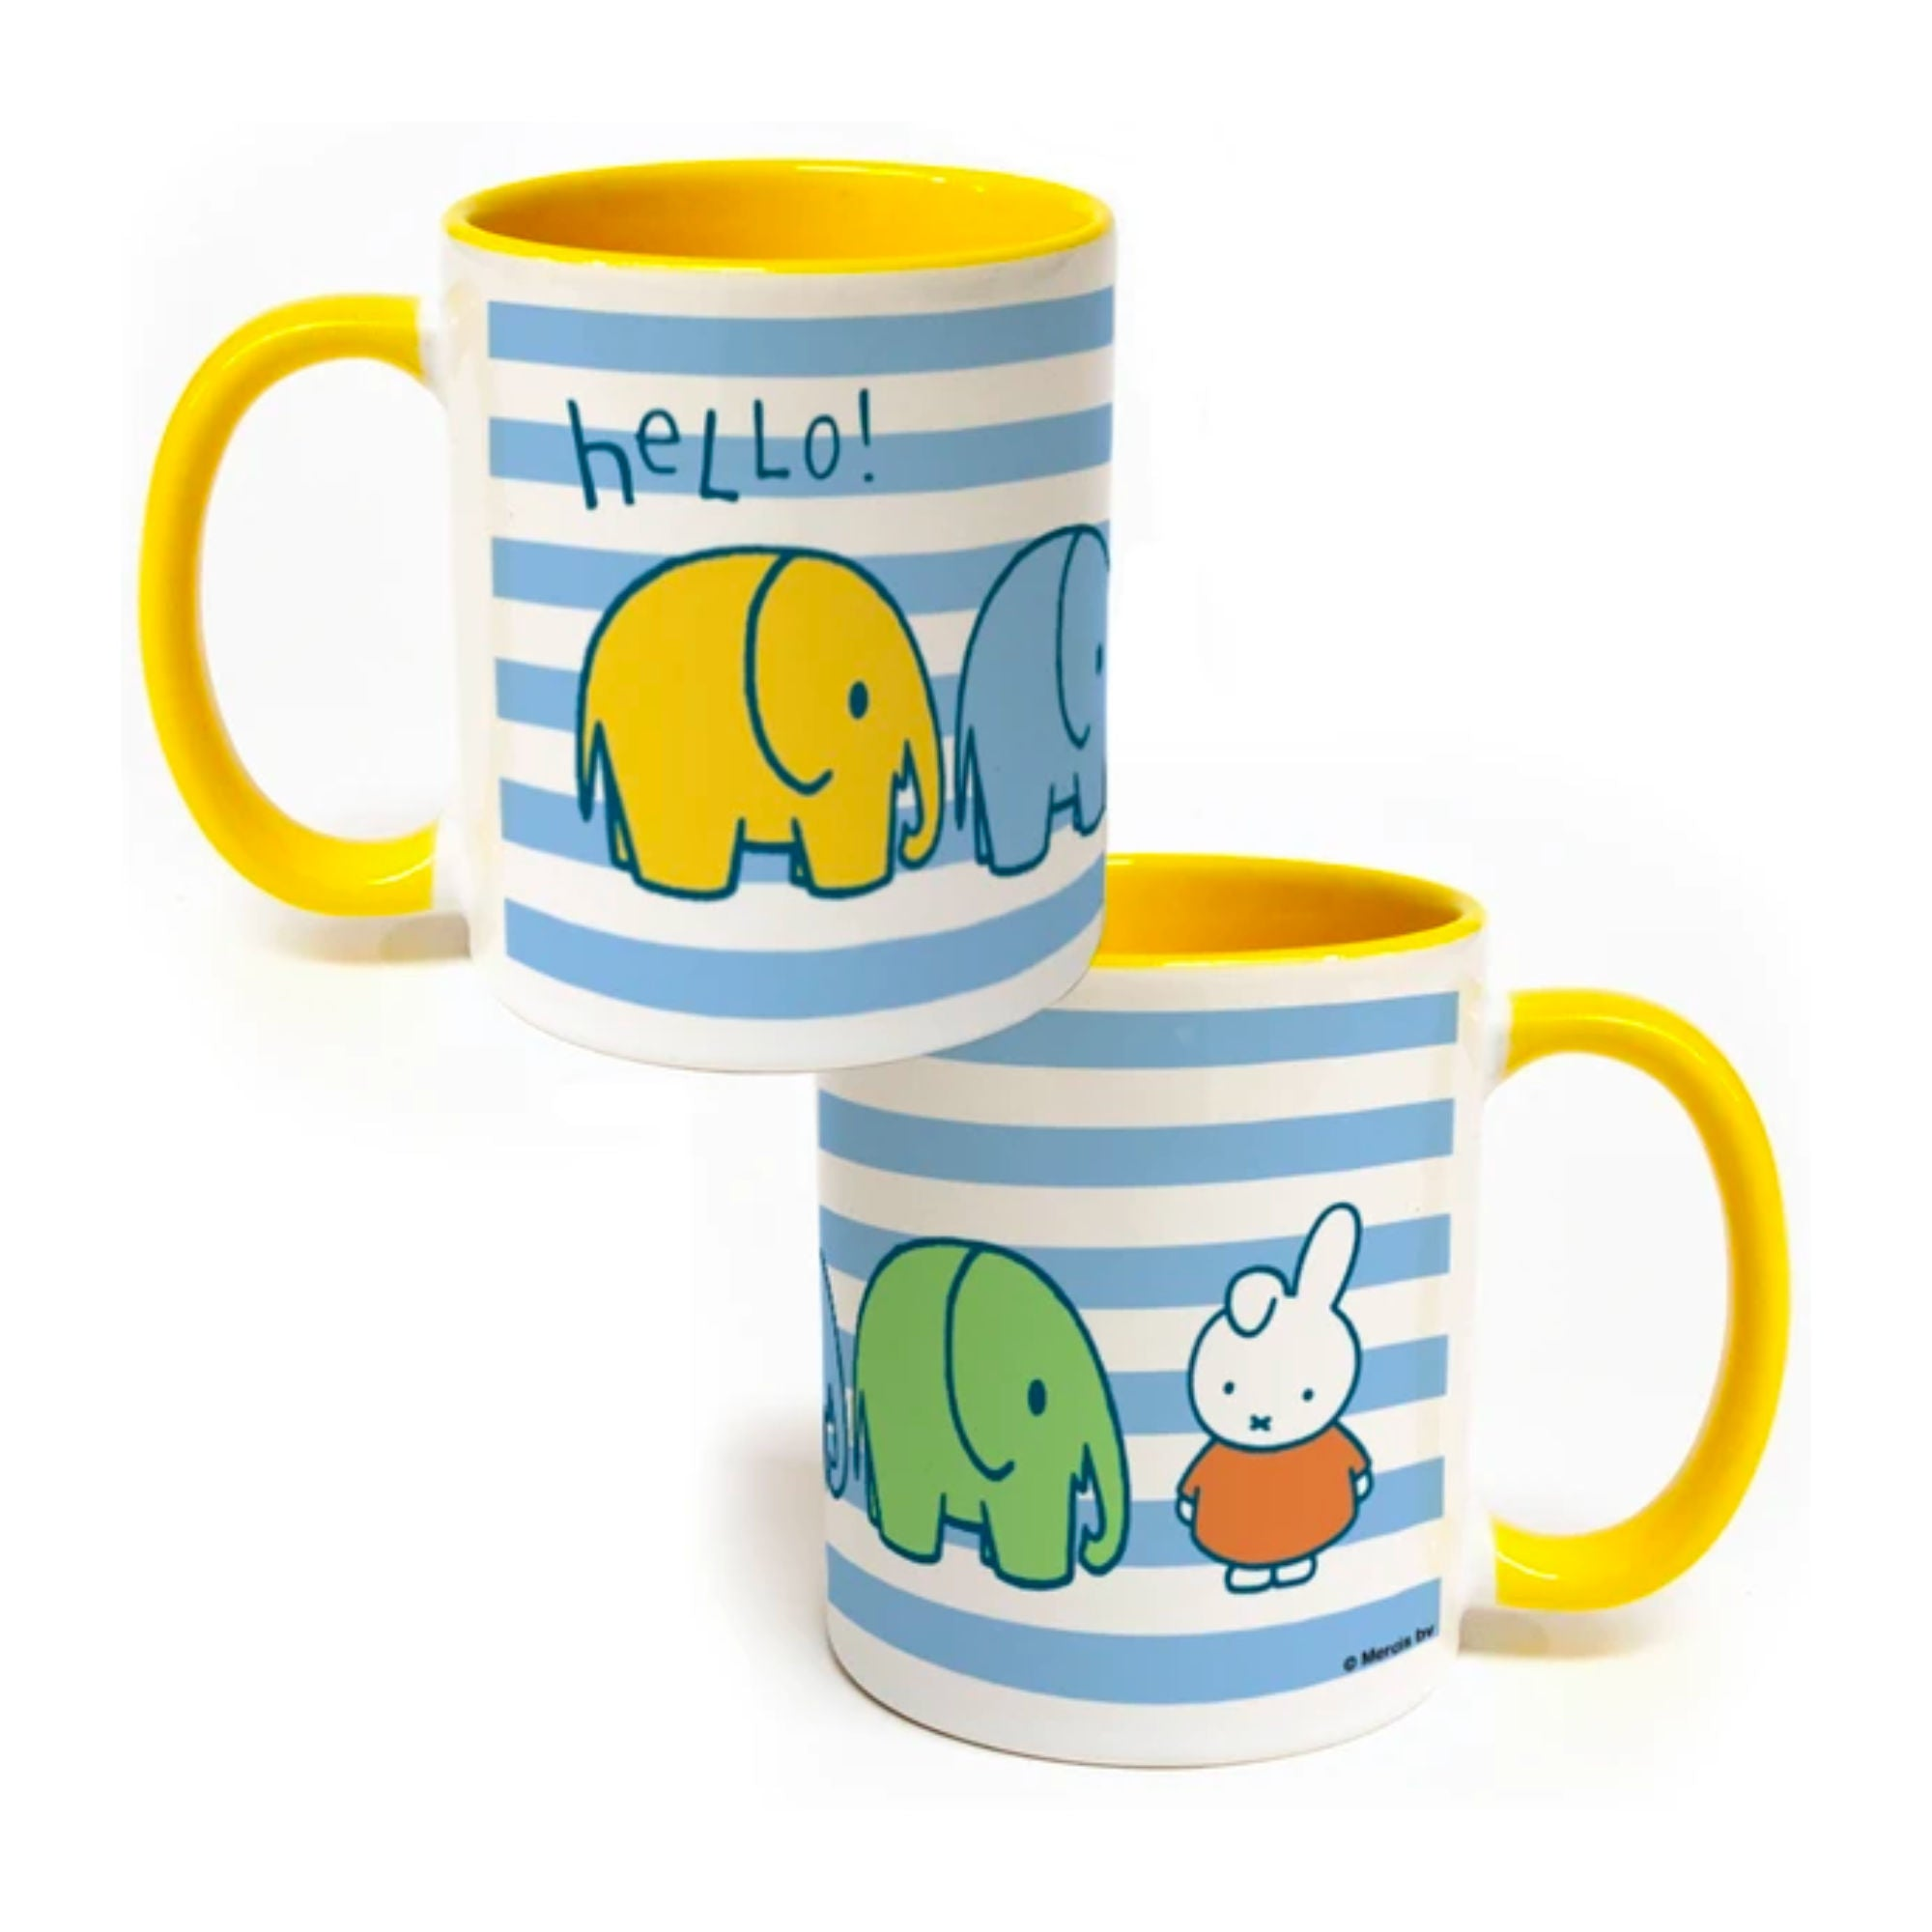 Miffy Porcelain Mug 11oz , Hello